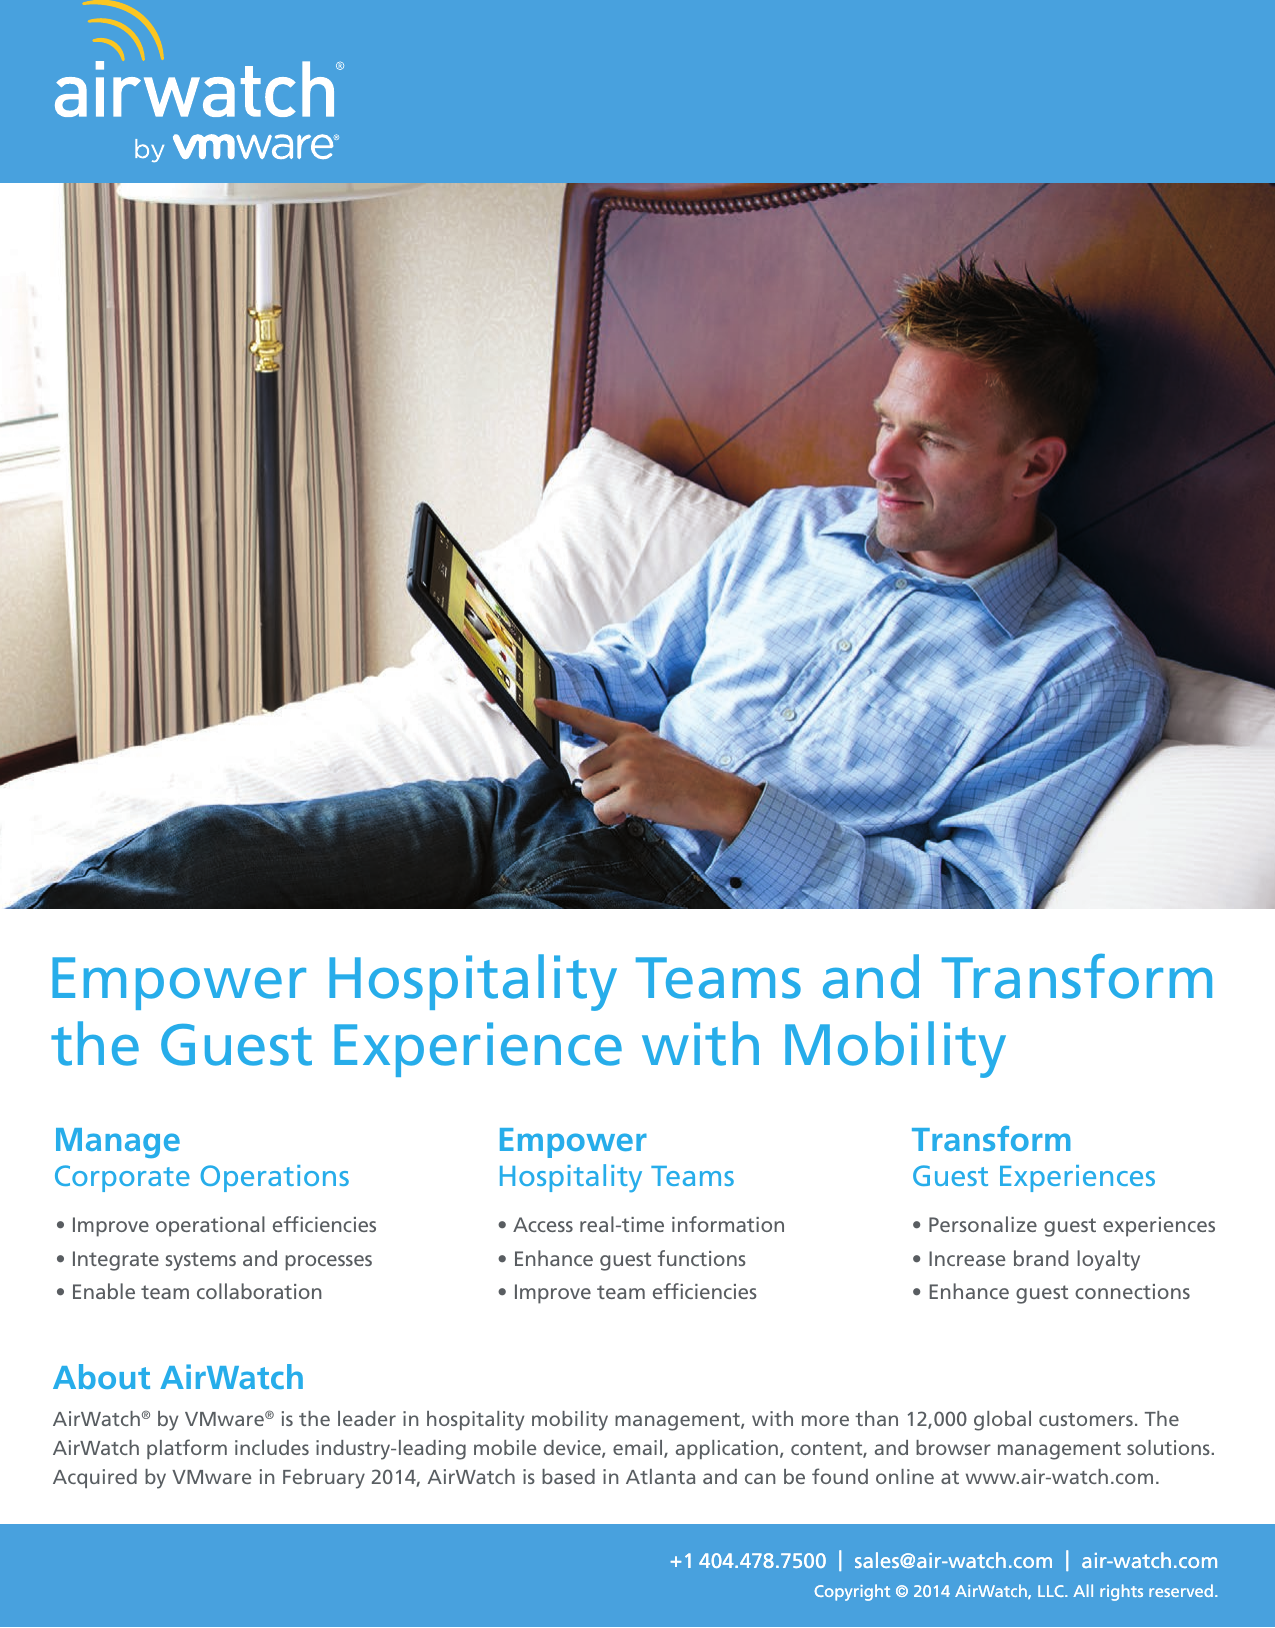 AirWatch By VMware Overview Hospitality brochure